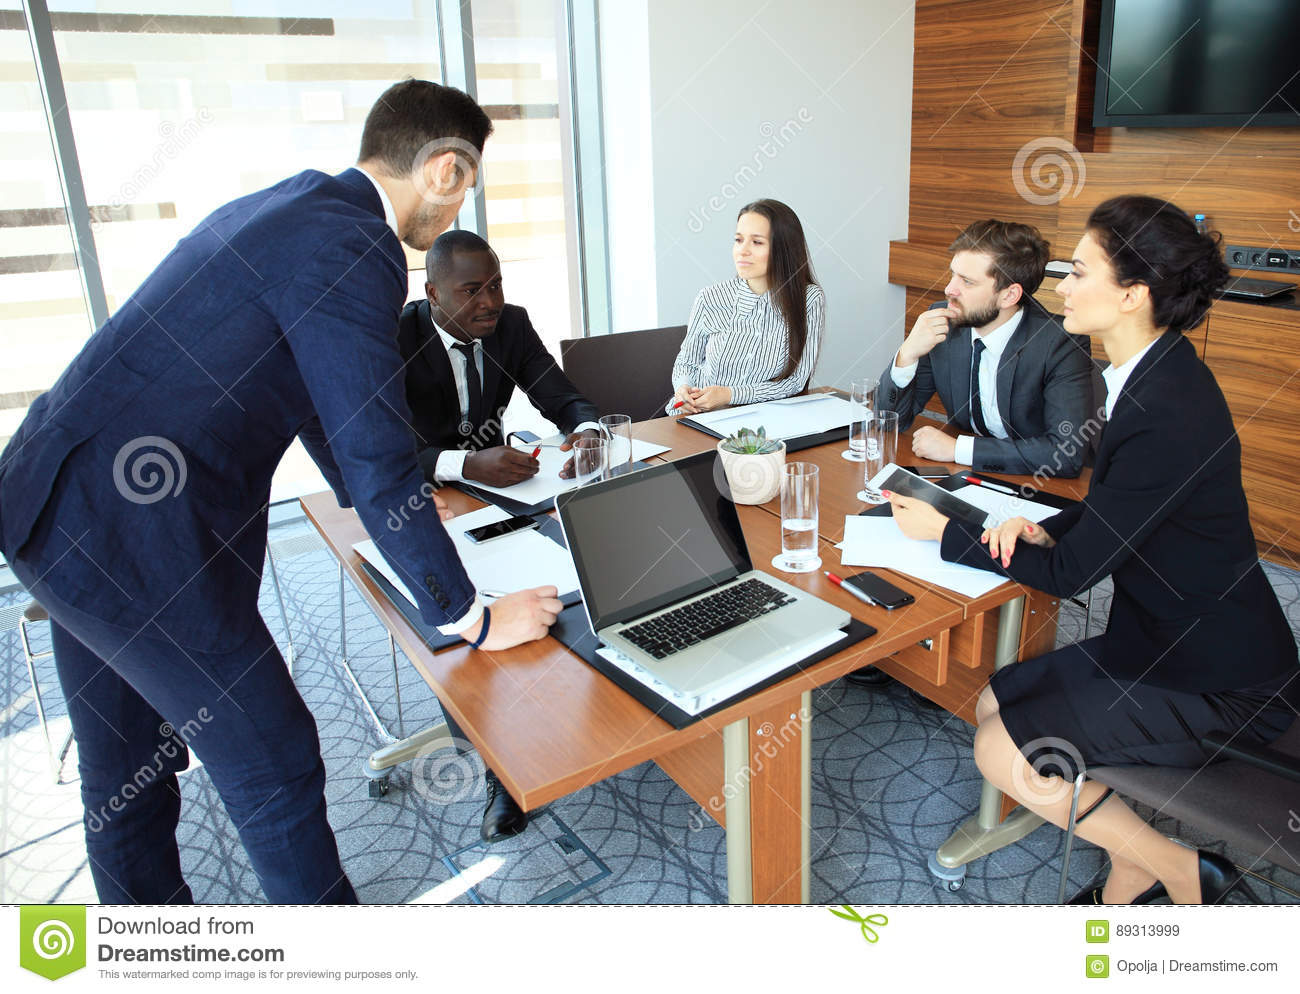 Entrepreneurs and business people conference in modern meeting room.